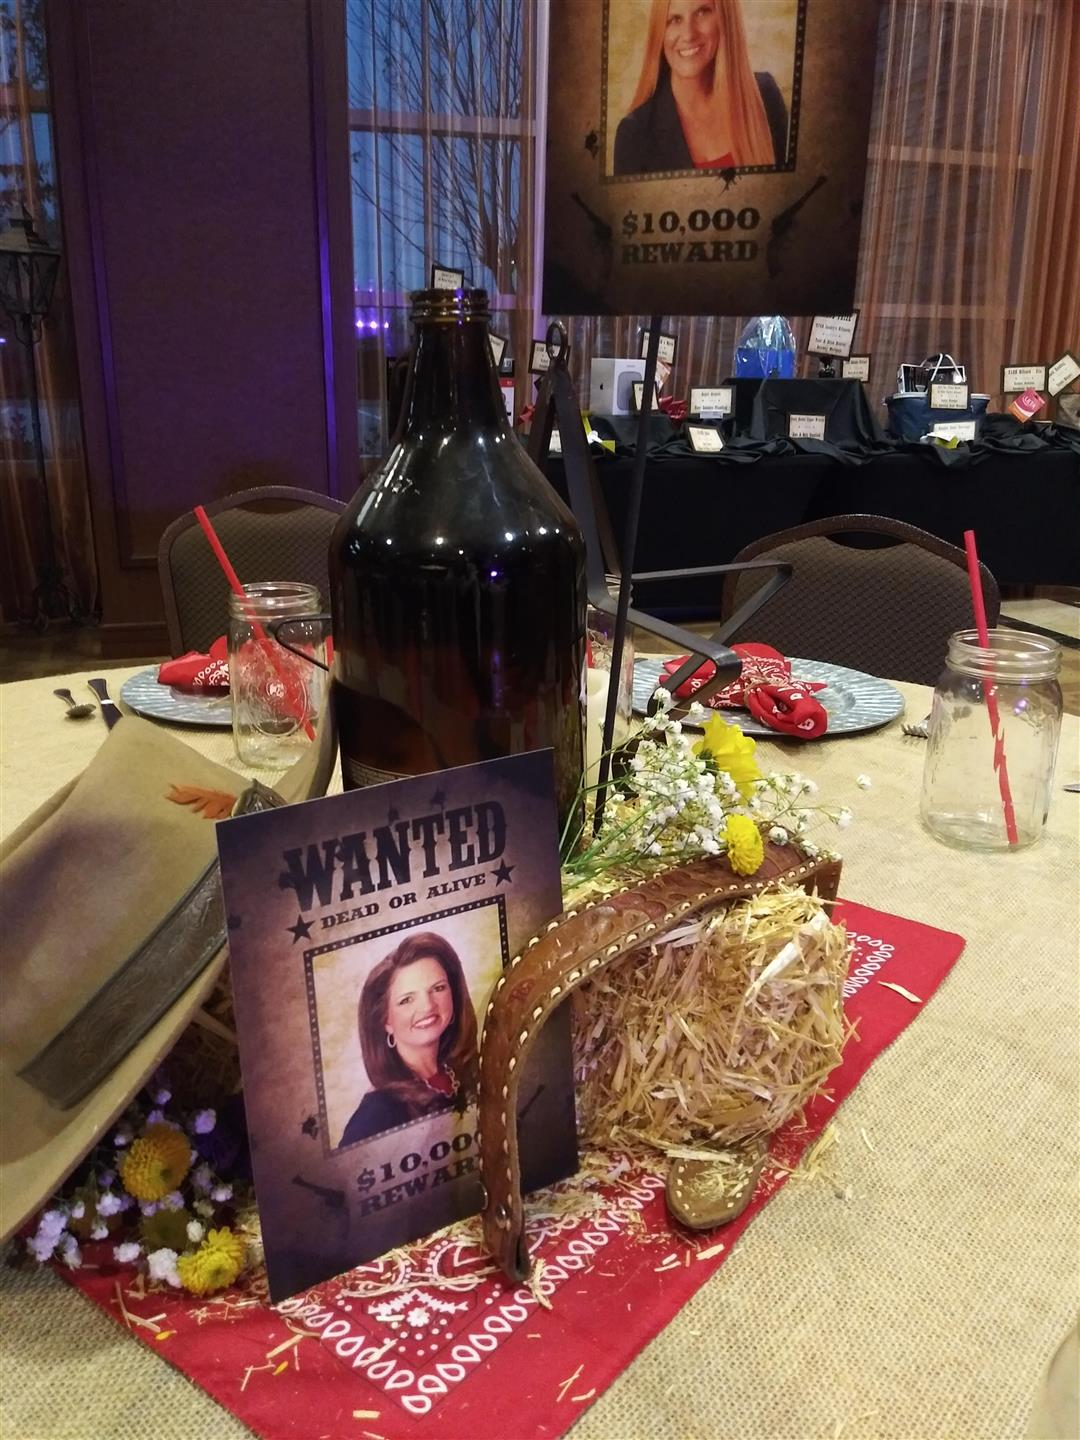 table centerpiece for cowboy party including wanted poster, hay bale, a bandana, and a beer growler